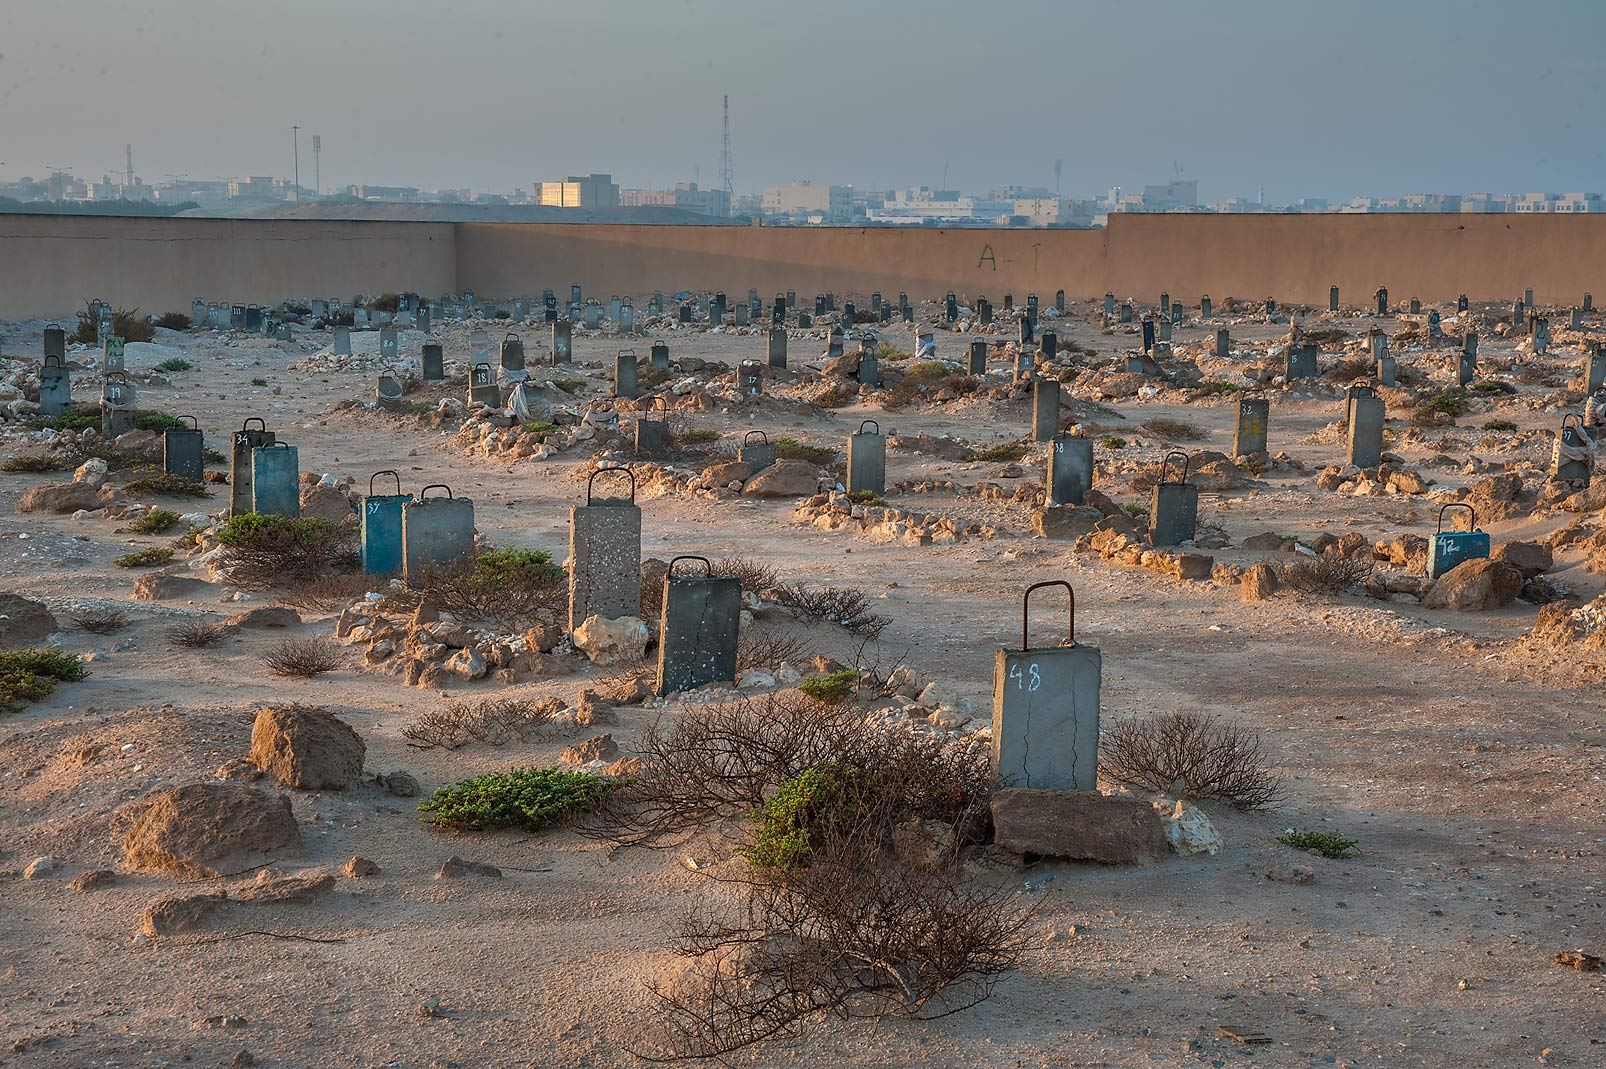 Concrete tombstones of Al Khor Cemetery. North from Al Khor, Qatar